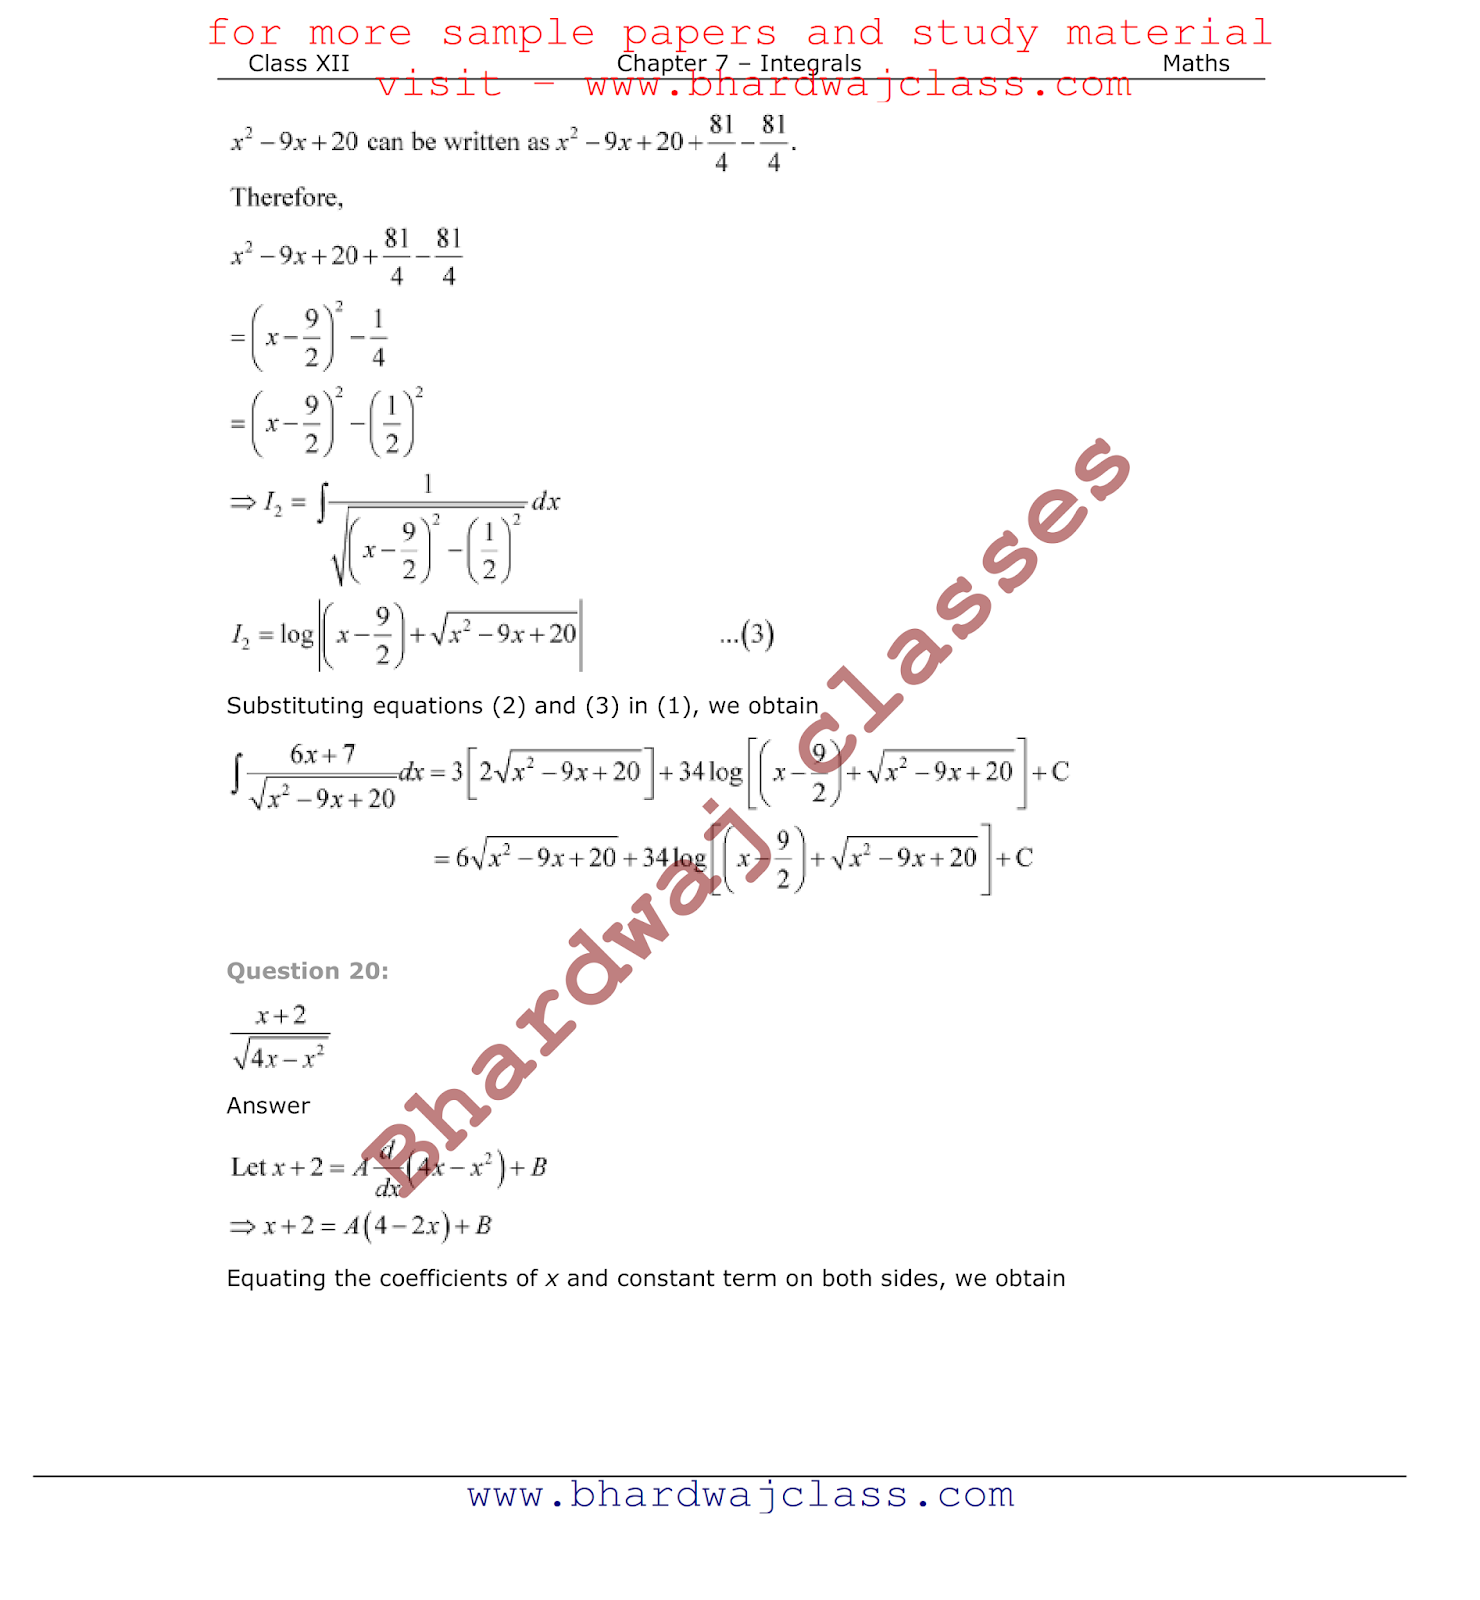 NCERT Solutions for Class 12 Maths - Free PDF Download